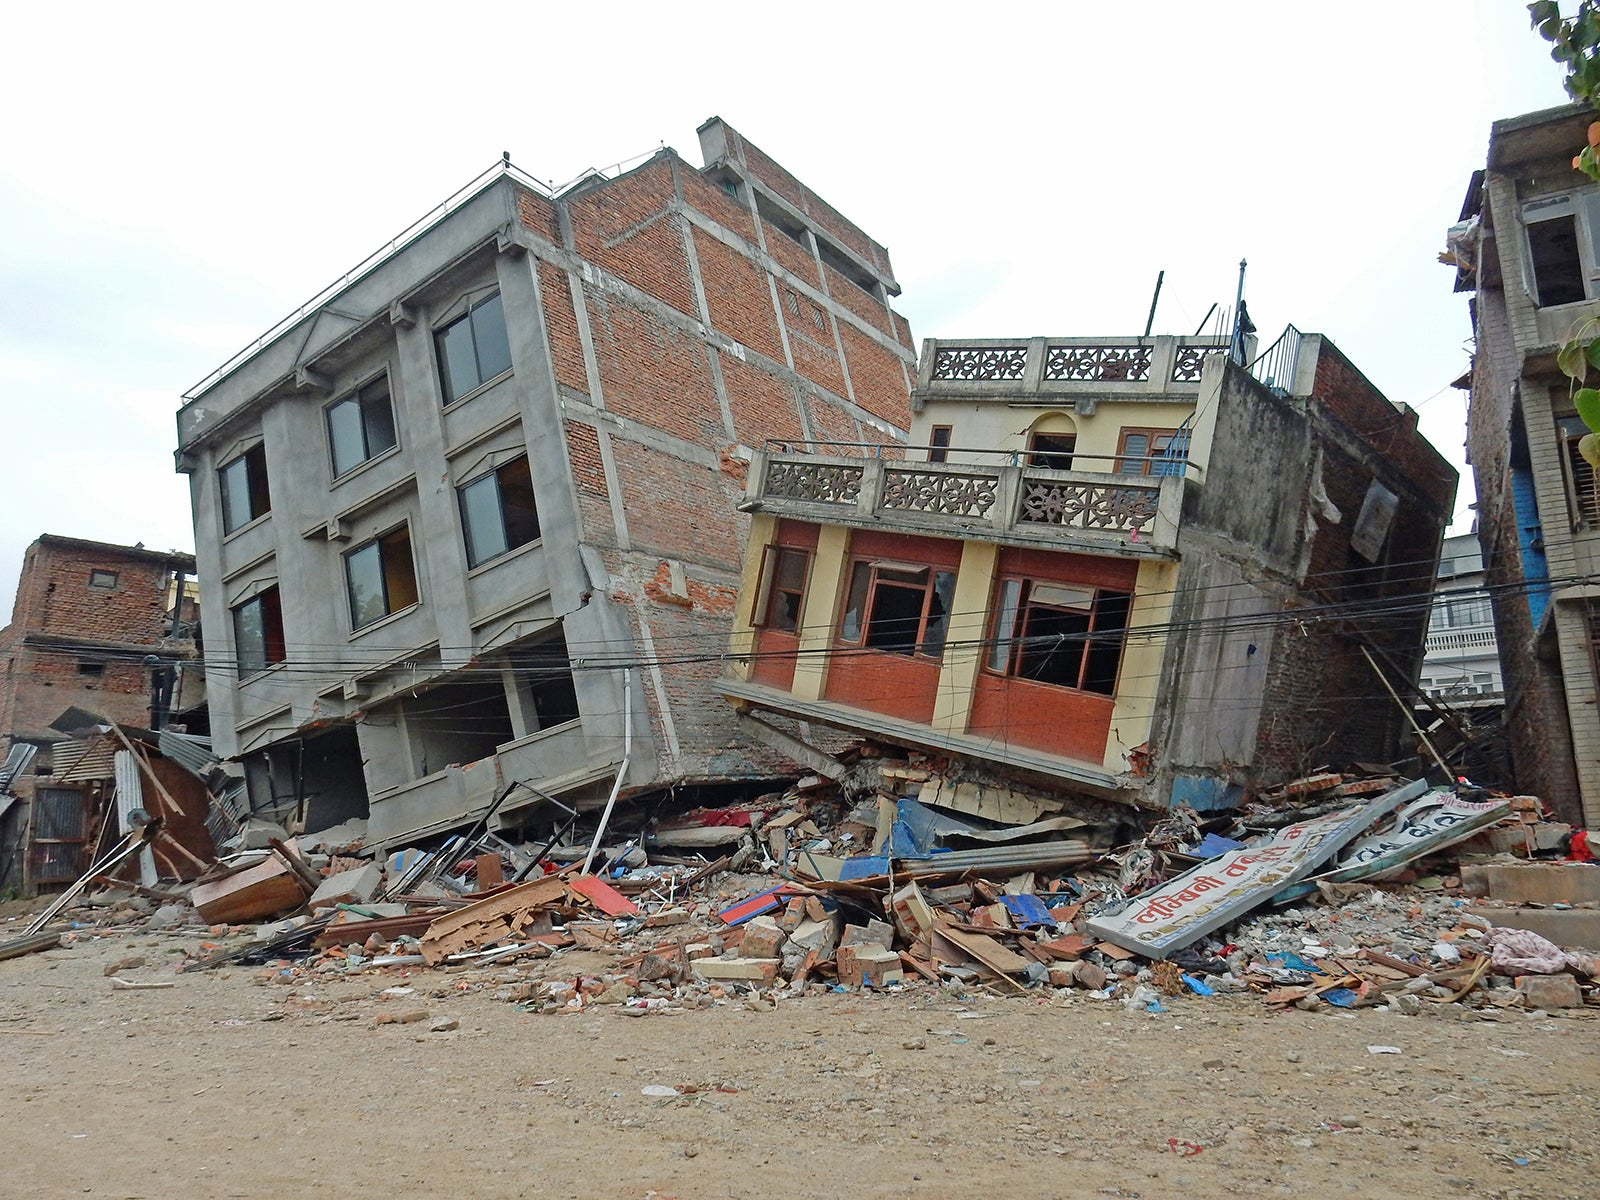 Building damage in Kathmandu from the 2015 Nepal earthquake